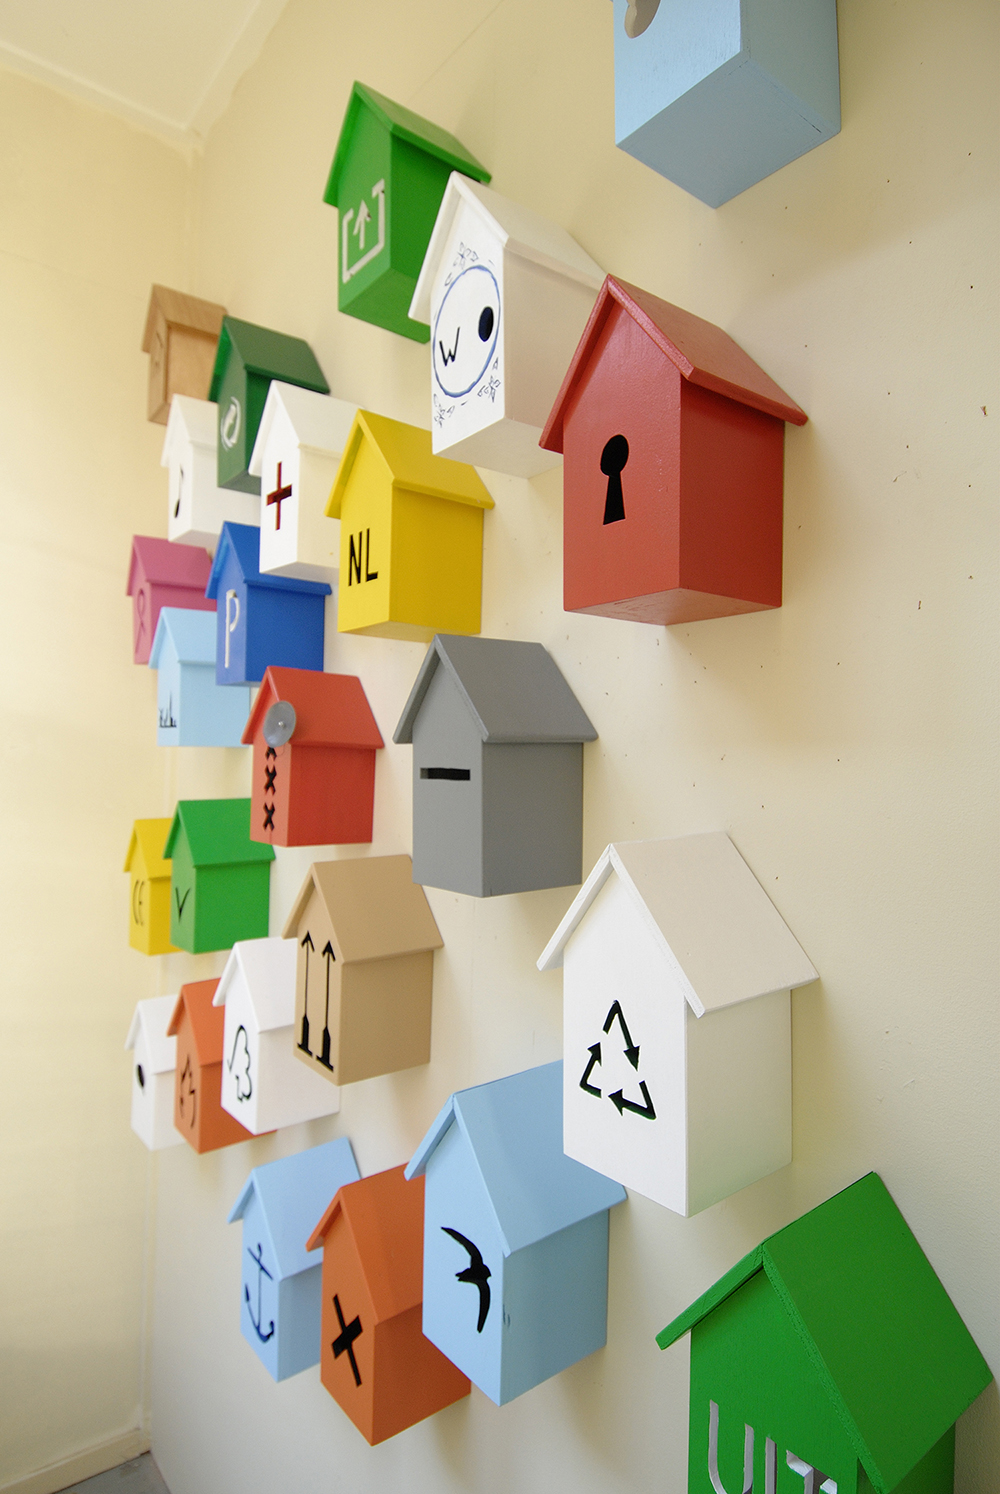 25 Birdhouses 2007<div style='clear:both;width:100%;height:0px;'></div><span class='desc'>Exhibition: UitZicht Amsterdam  <br> Material: sawn out wood, acryl paint  <br> Curators: Guda Koster & Matthijs Muller</span>